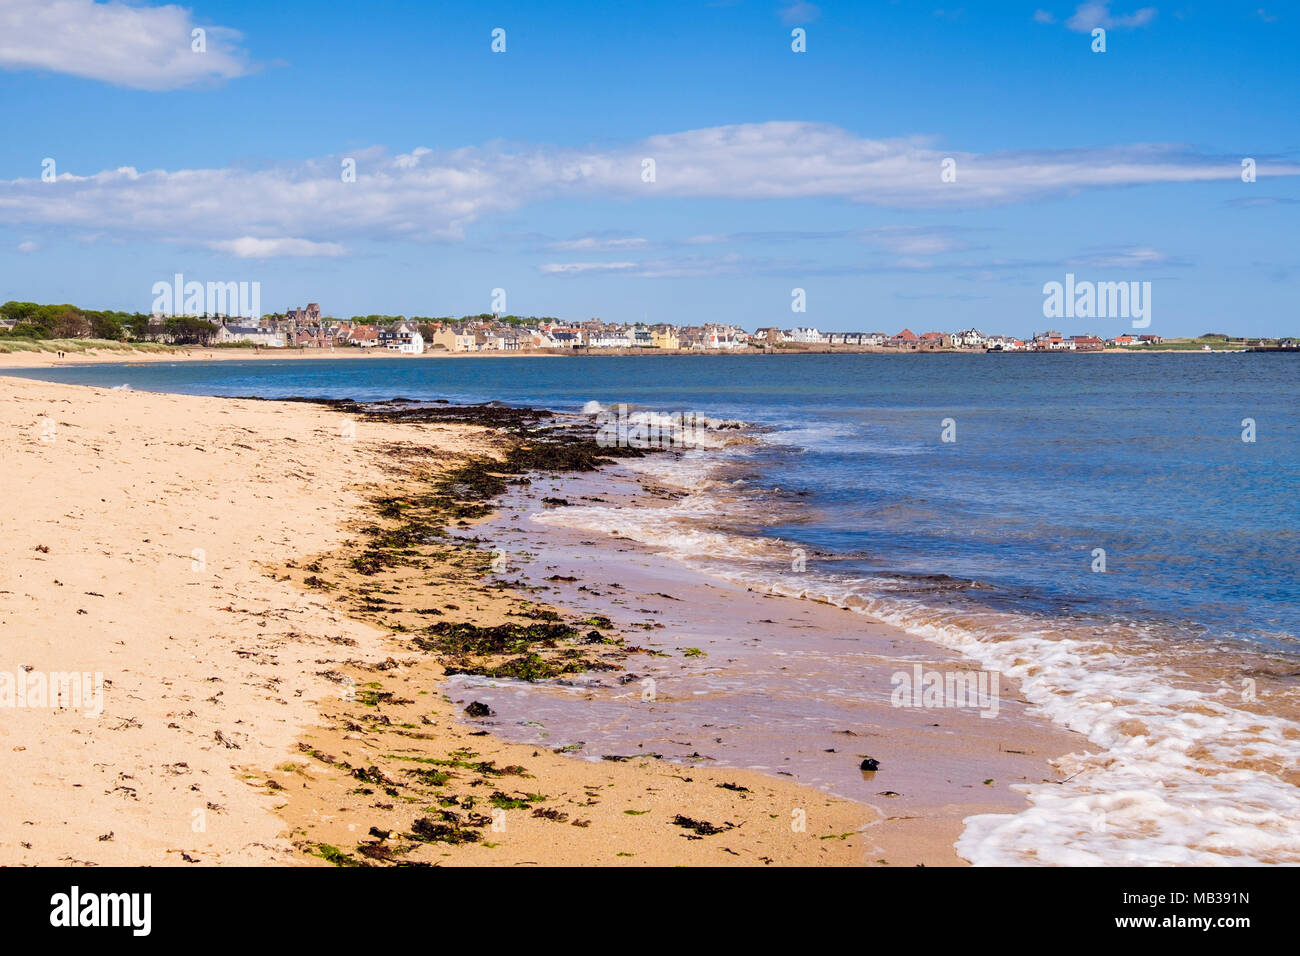 Seaweed at high tide mark on sandy beach on Firth of Forth coast. Elie and Earlsferry, East Neuk of Fife, Fife, Scotland, UK, Britain Stock Photo